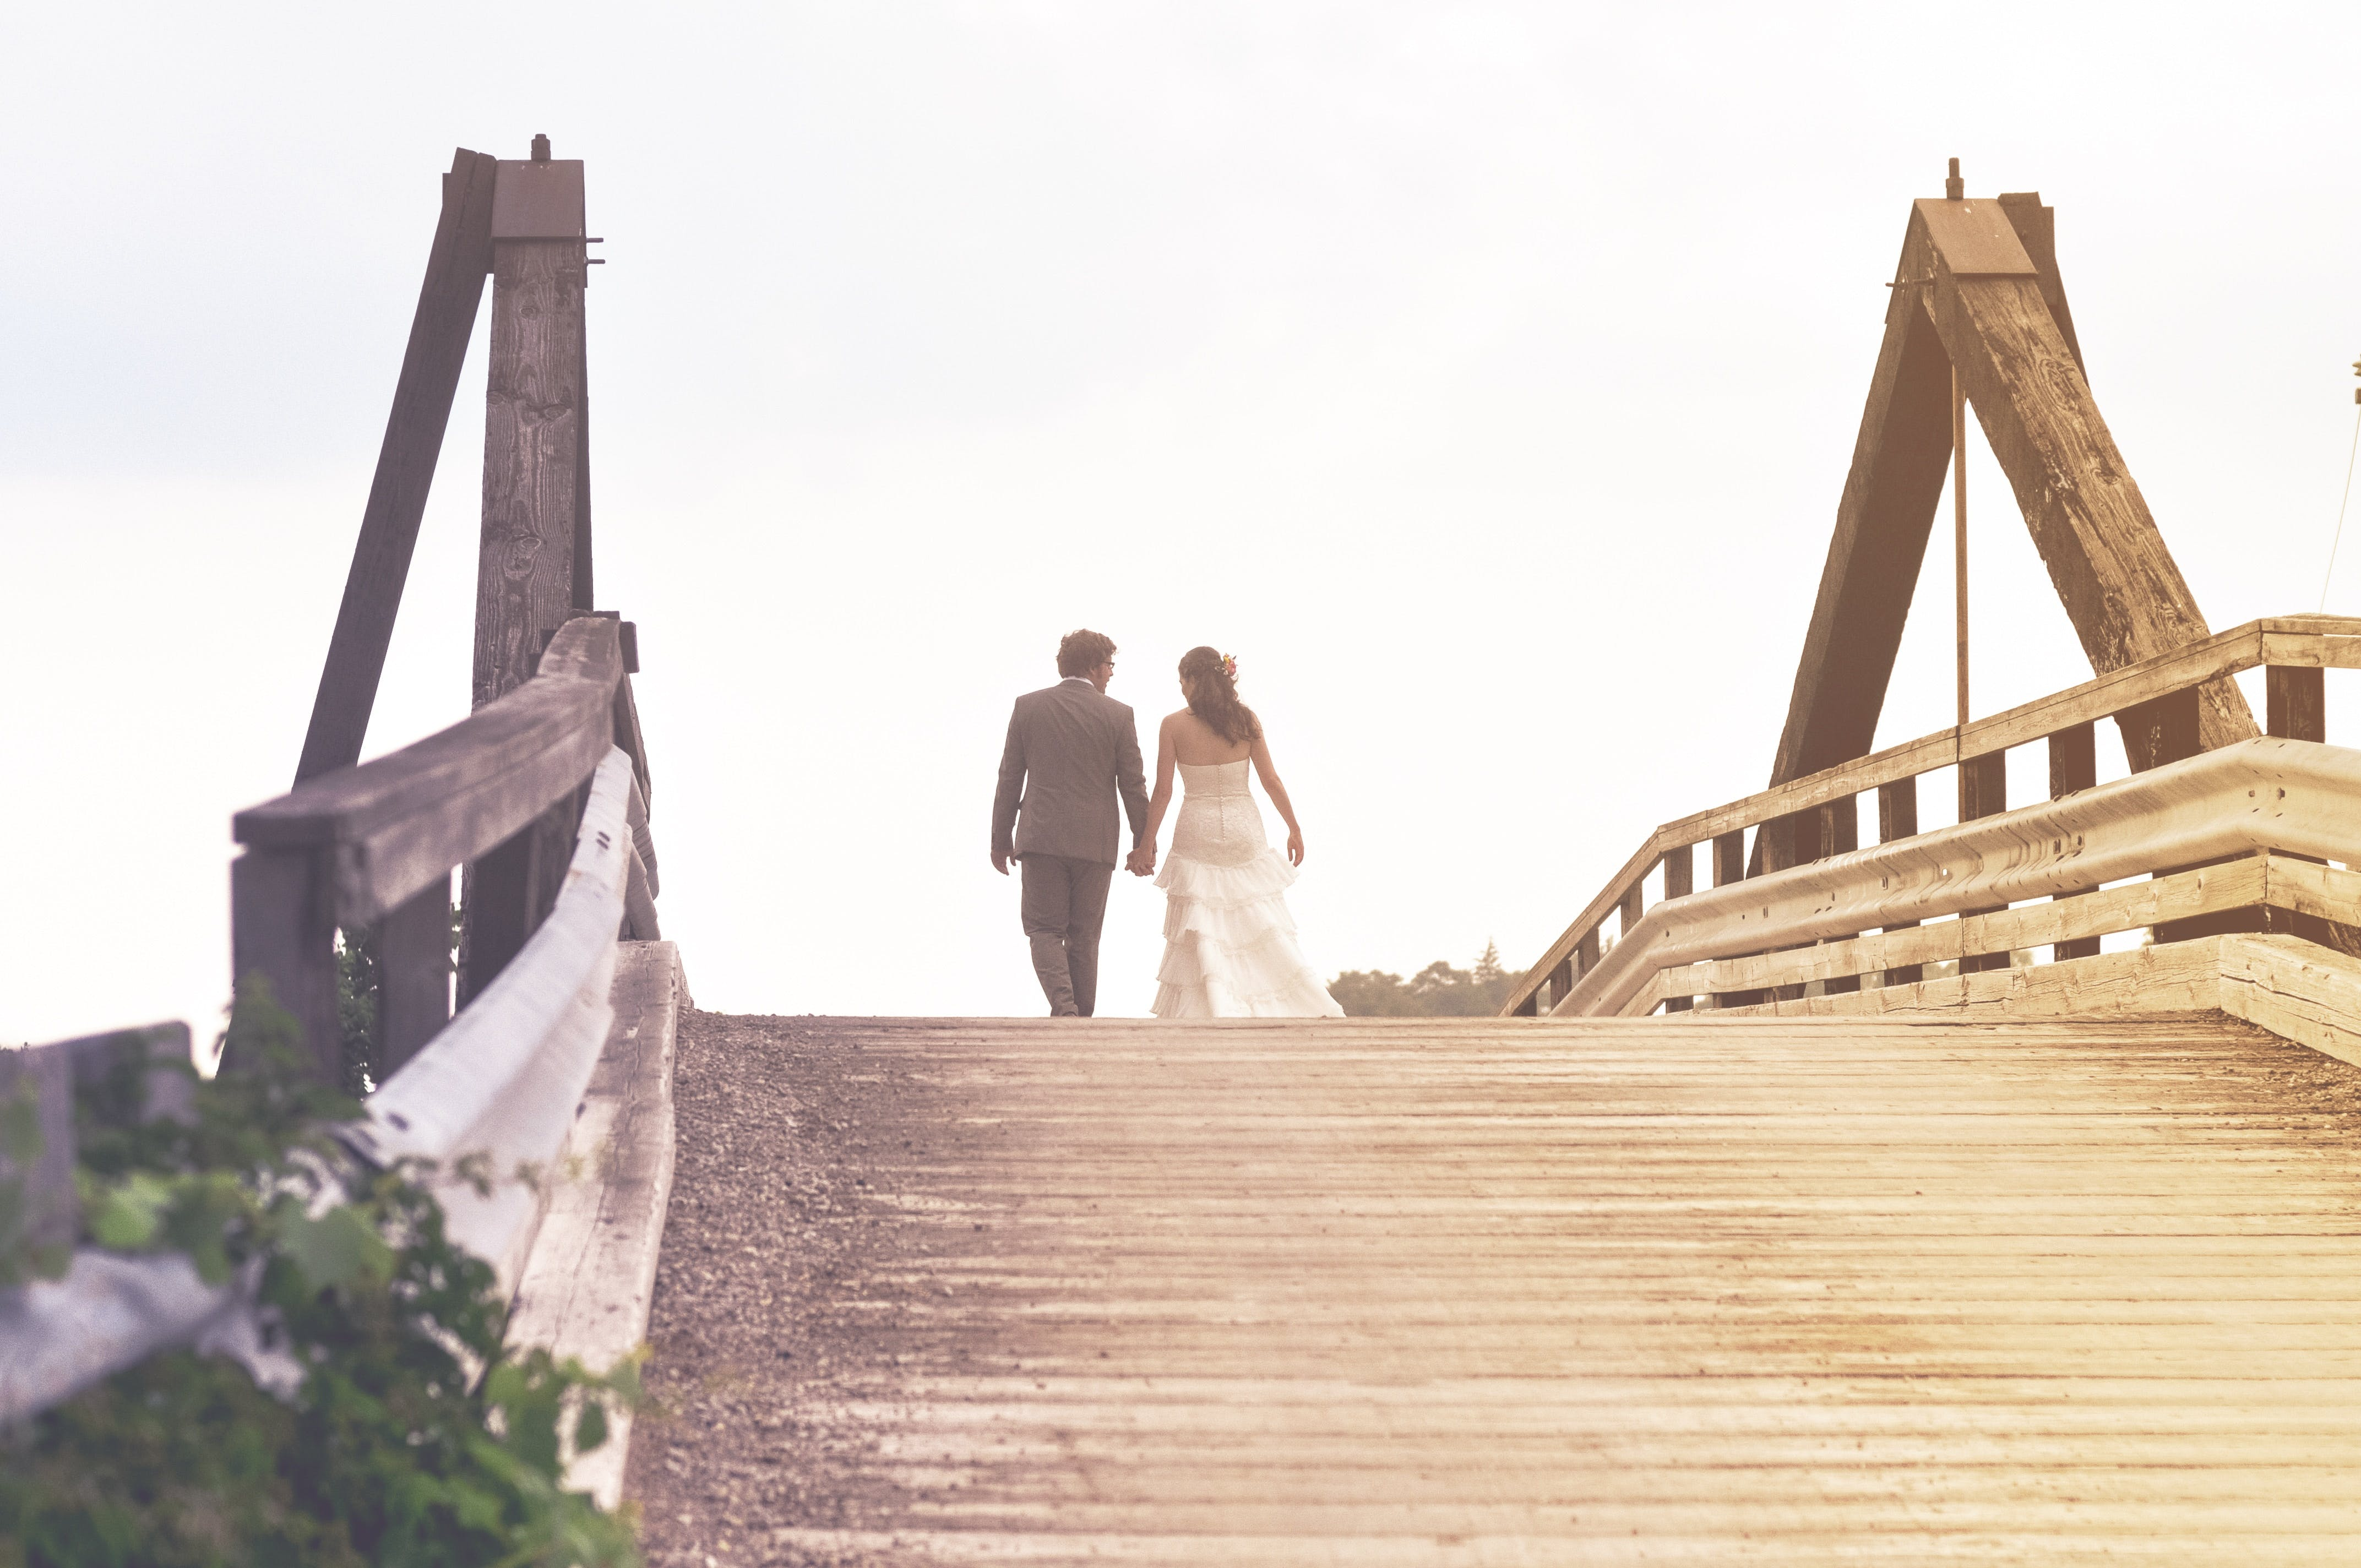 Man and Woman Holding Hands While Walking on Bridge